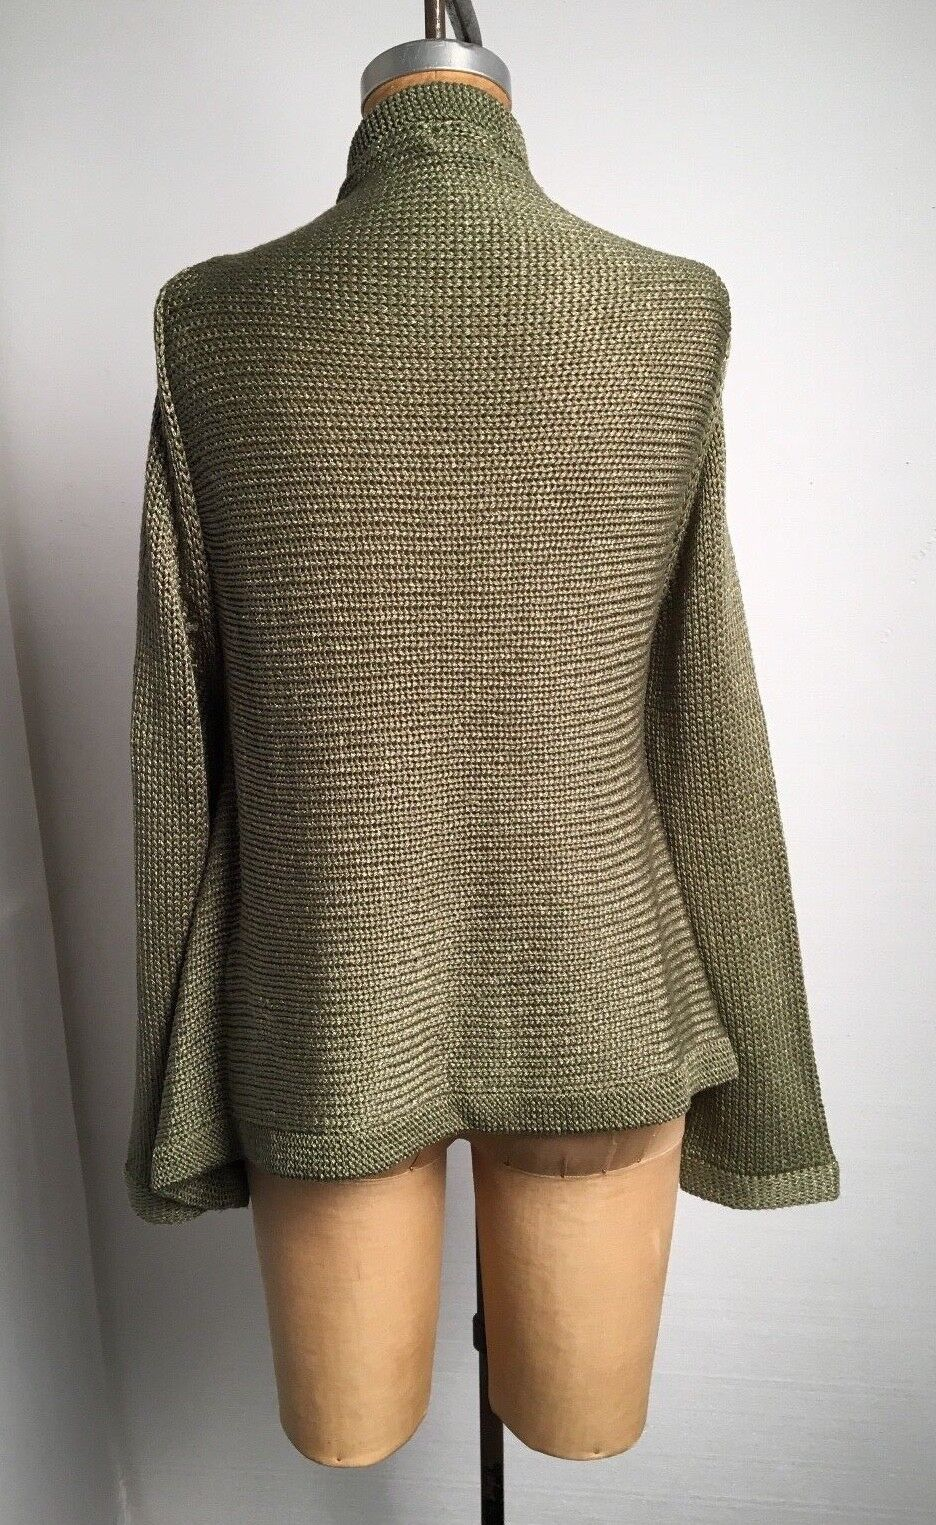 Vtg 90s City Casuals M Chunky Knit Credver Credver Credver Cardigan Sweater Sage Green w Pin 91473f